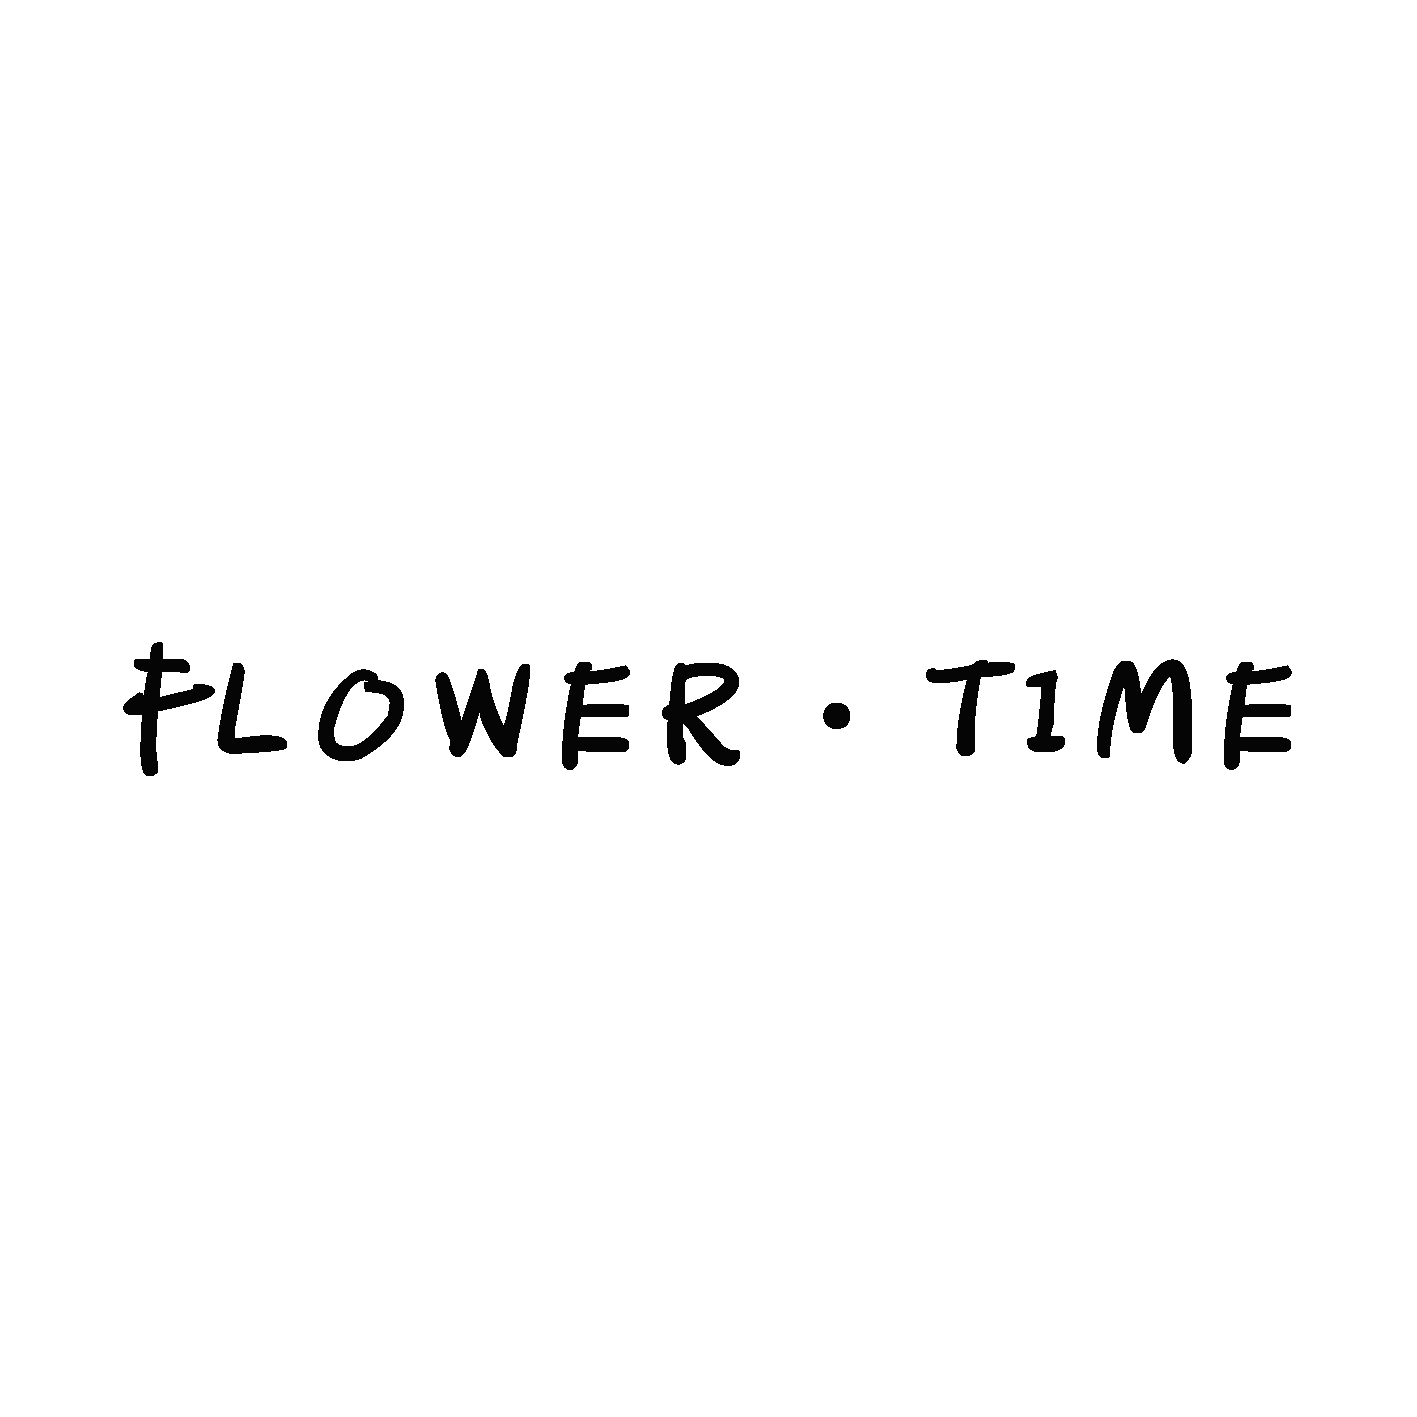 FLOWER·TIME